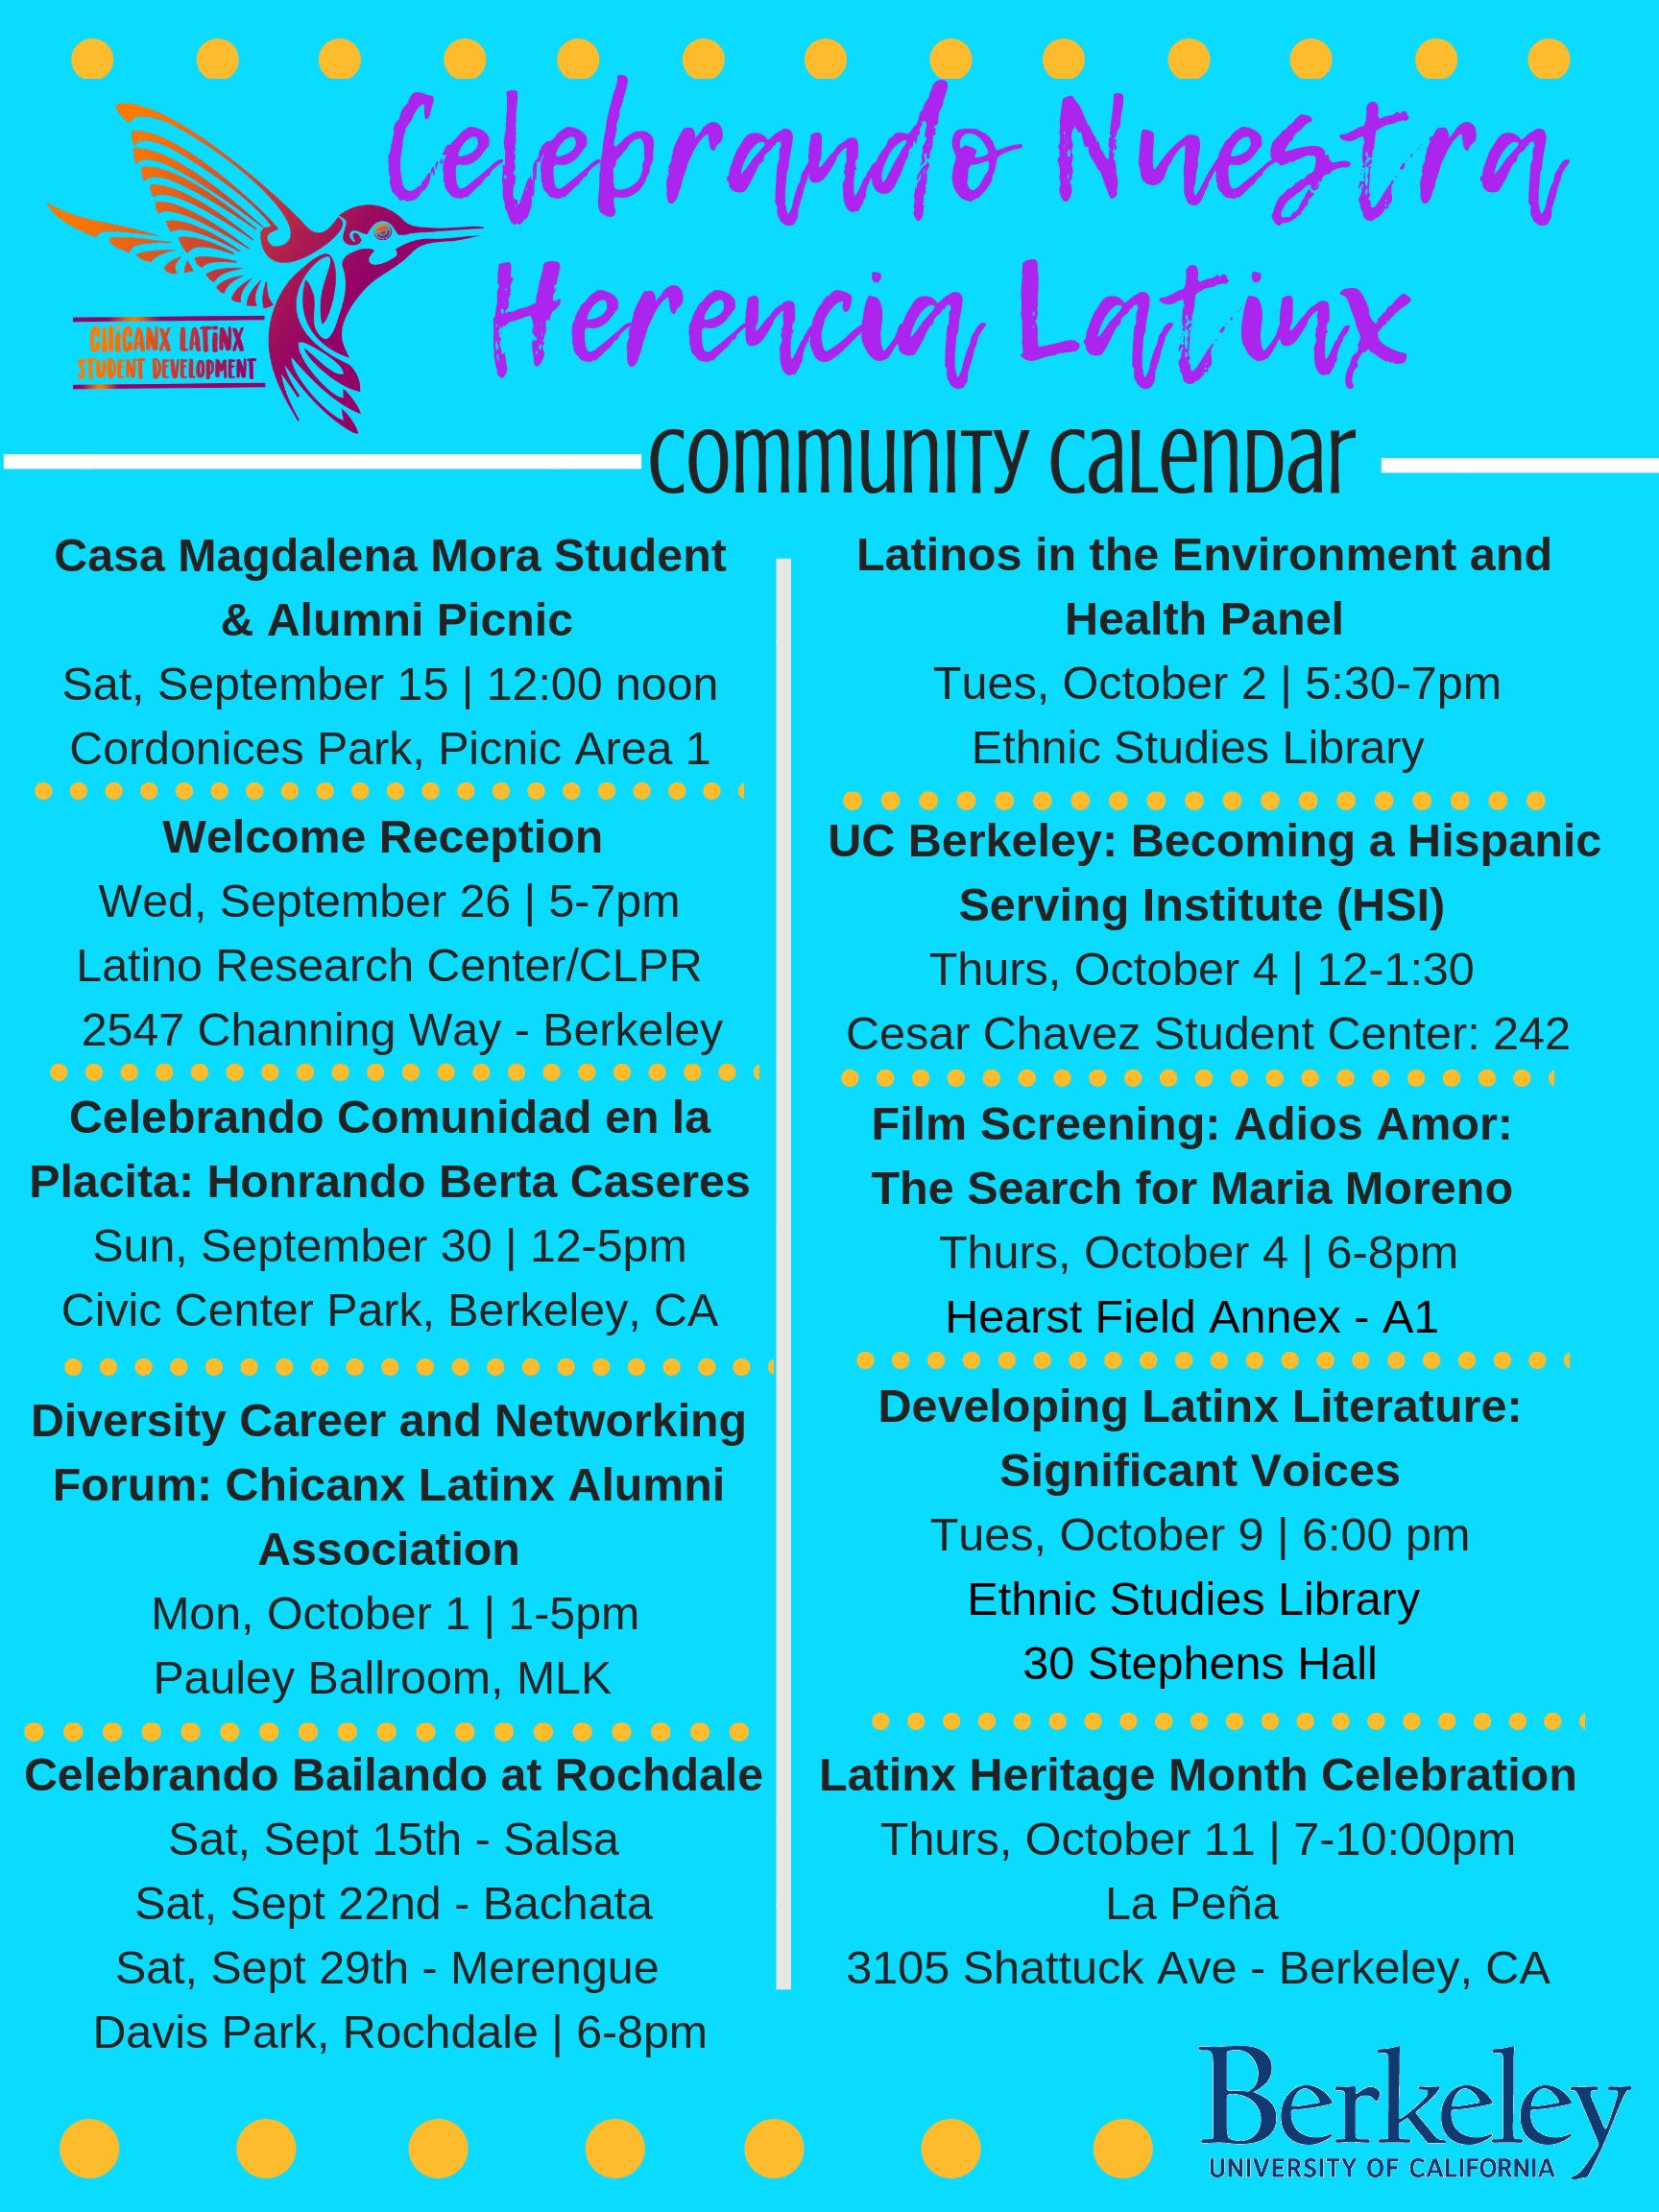 Calendar of some of the events that will be held during Latinx Heritage Month 2018 Sept. 15 - Oct. 15.